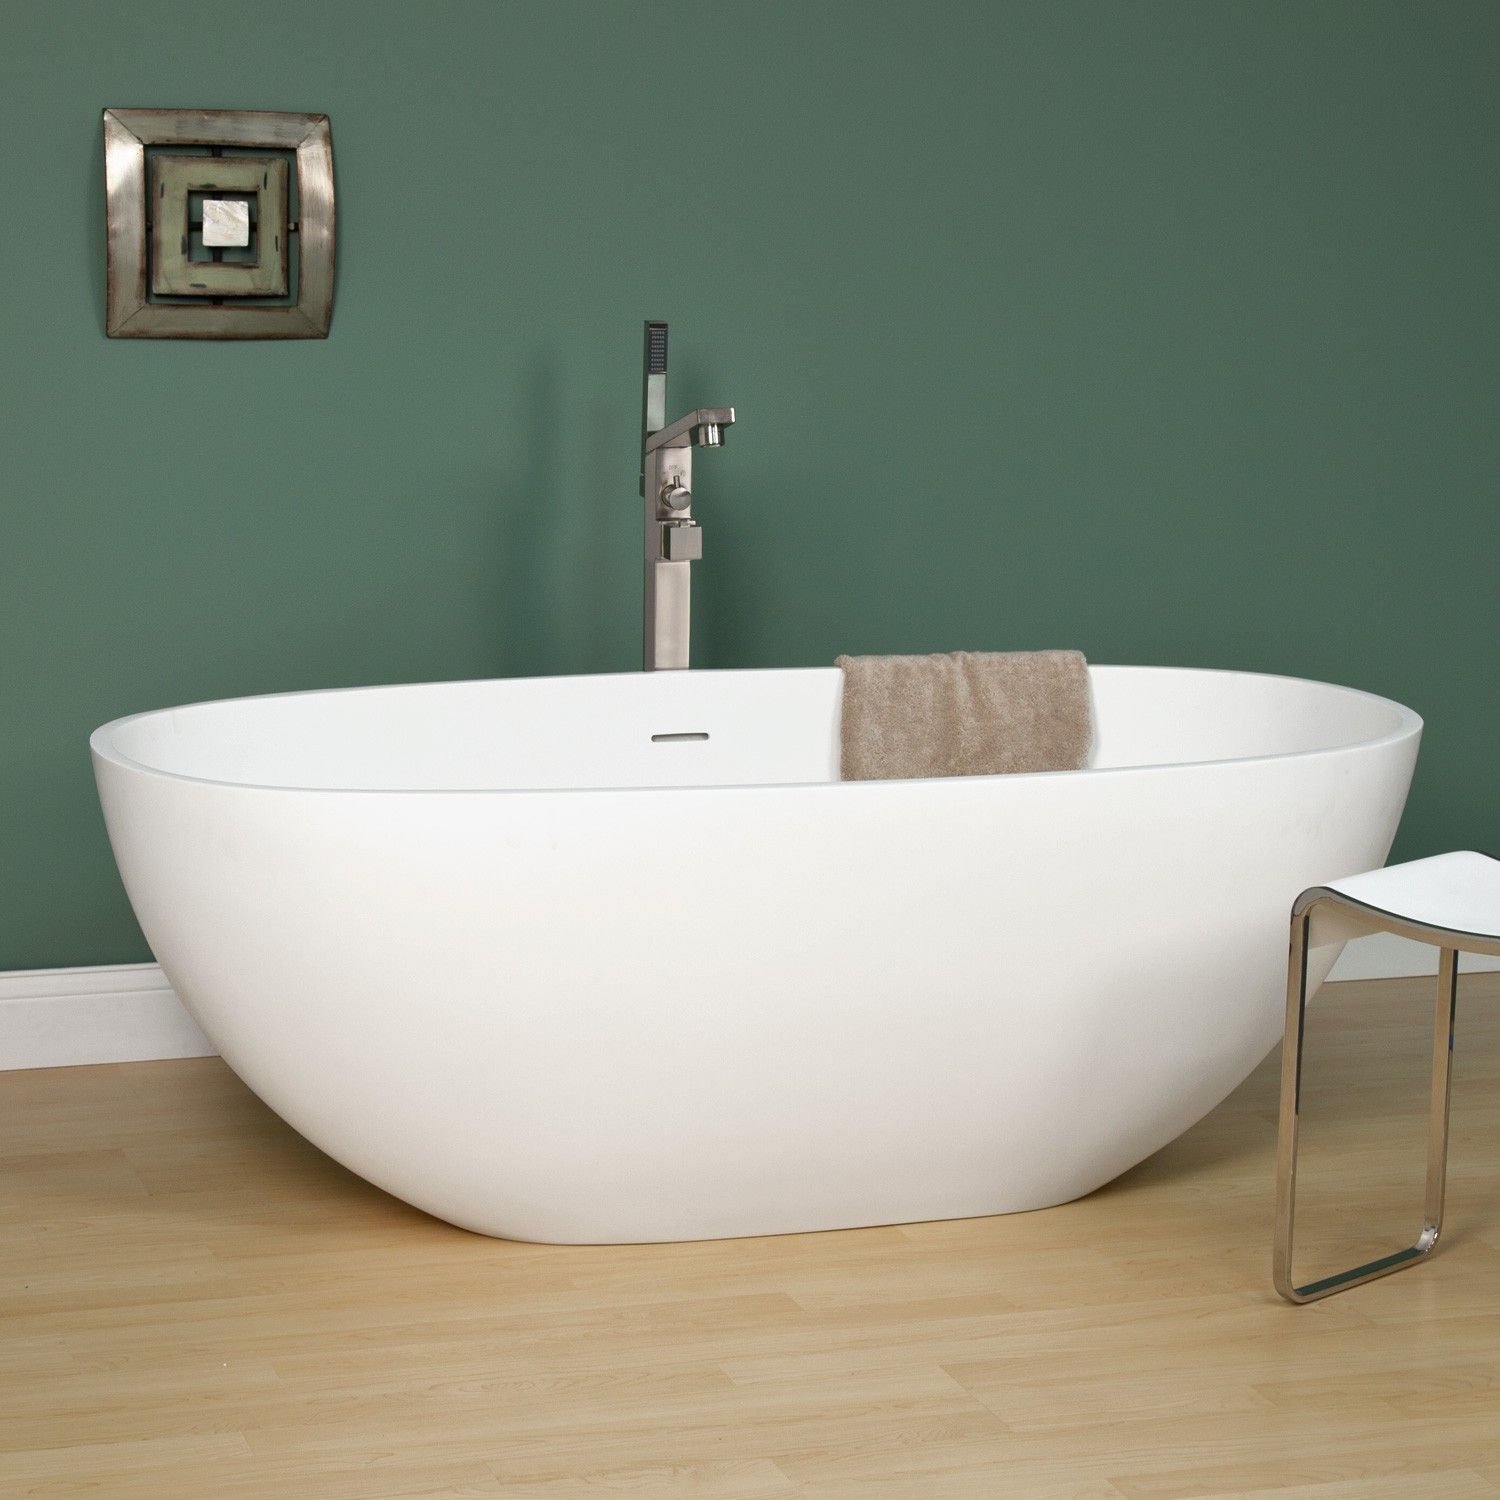 Famous Solid Surface Tubs Pictures Inspiration - Bathtub Design ...